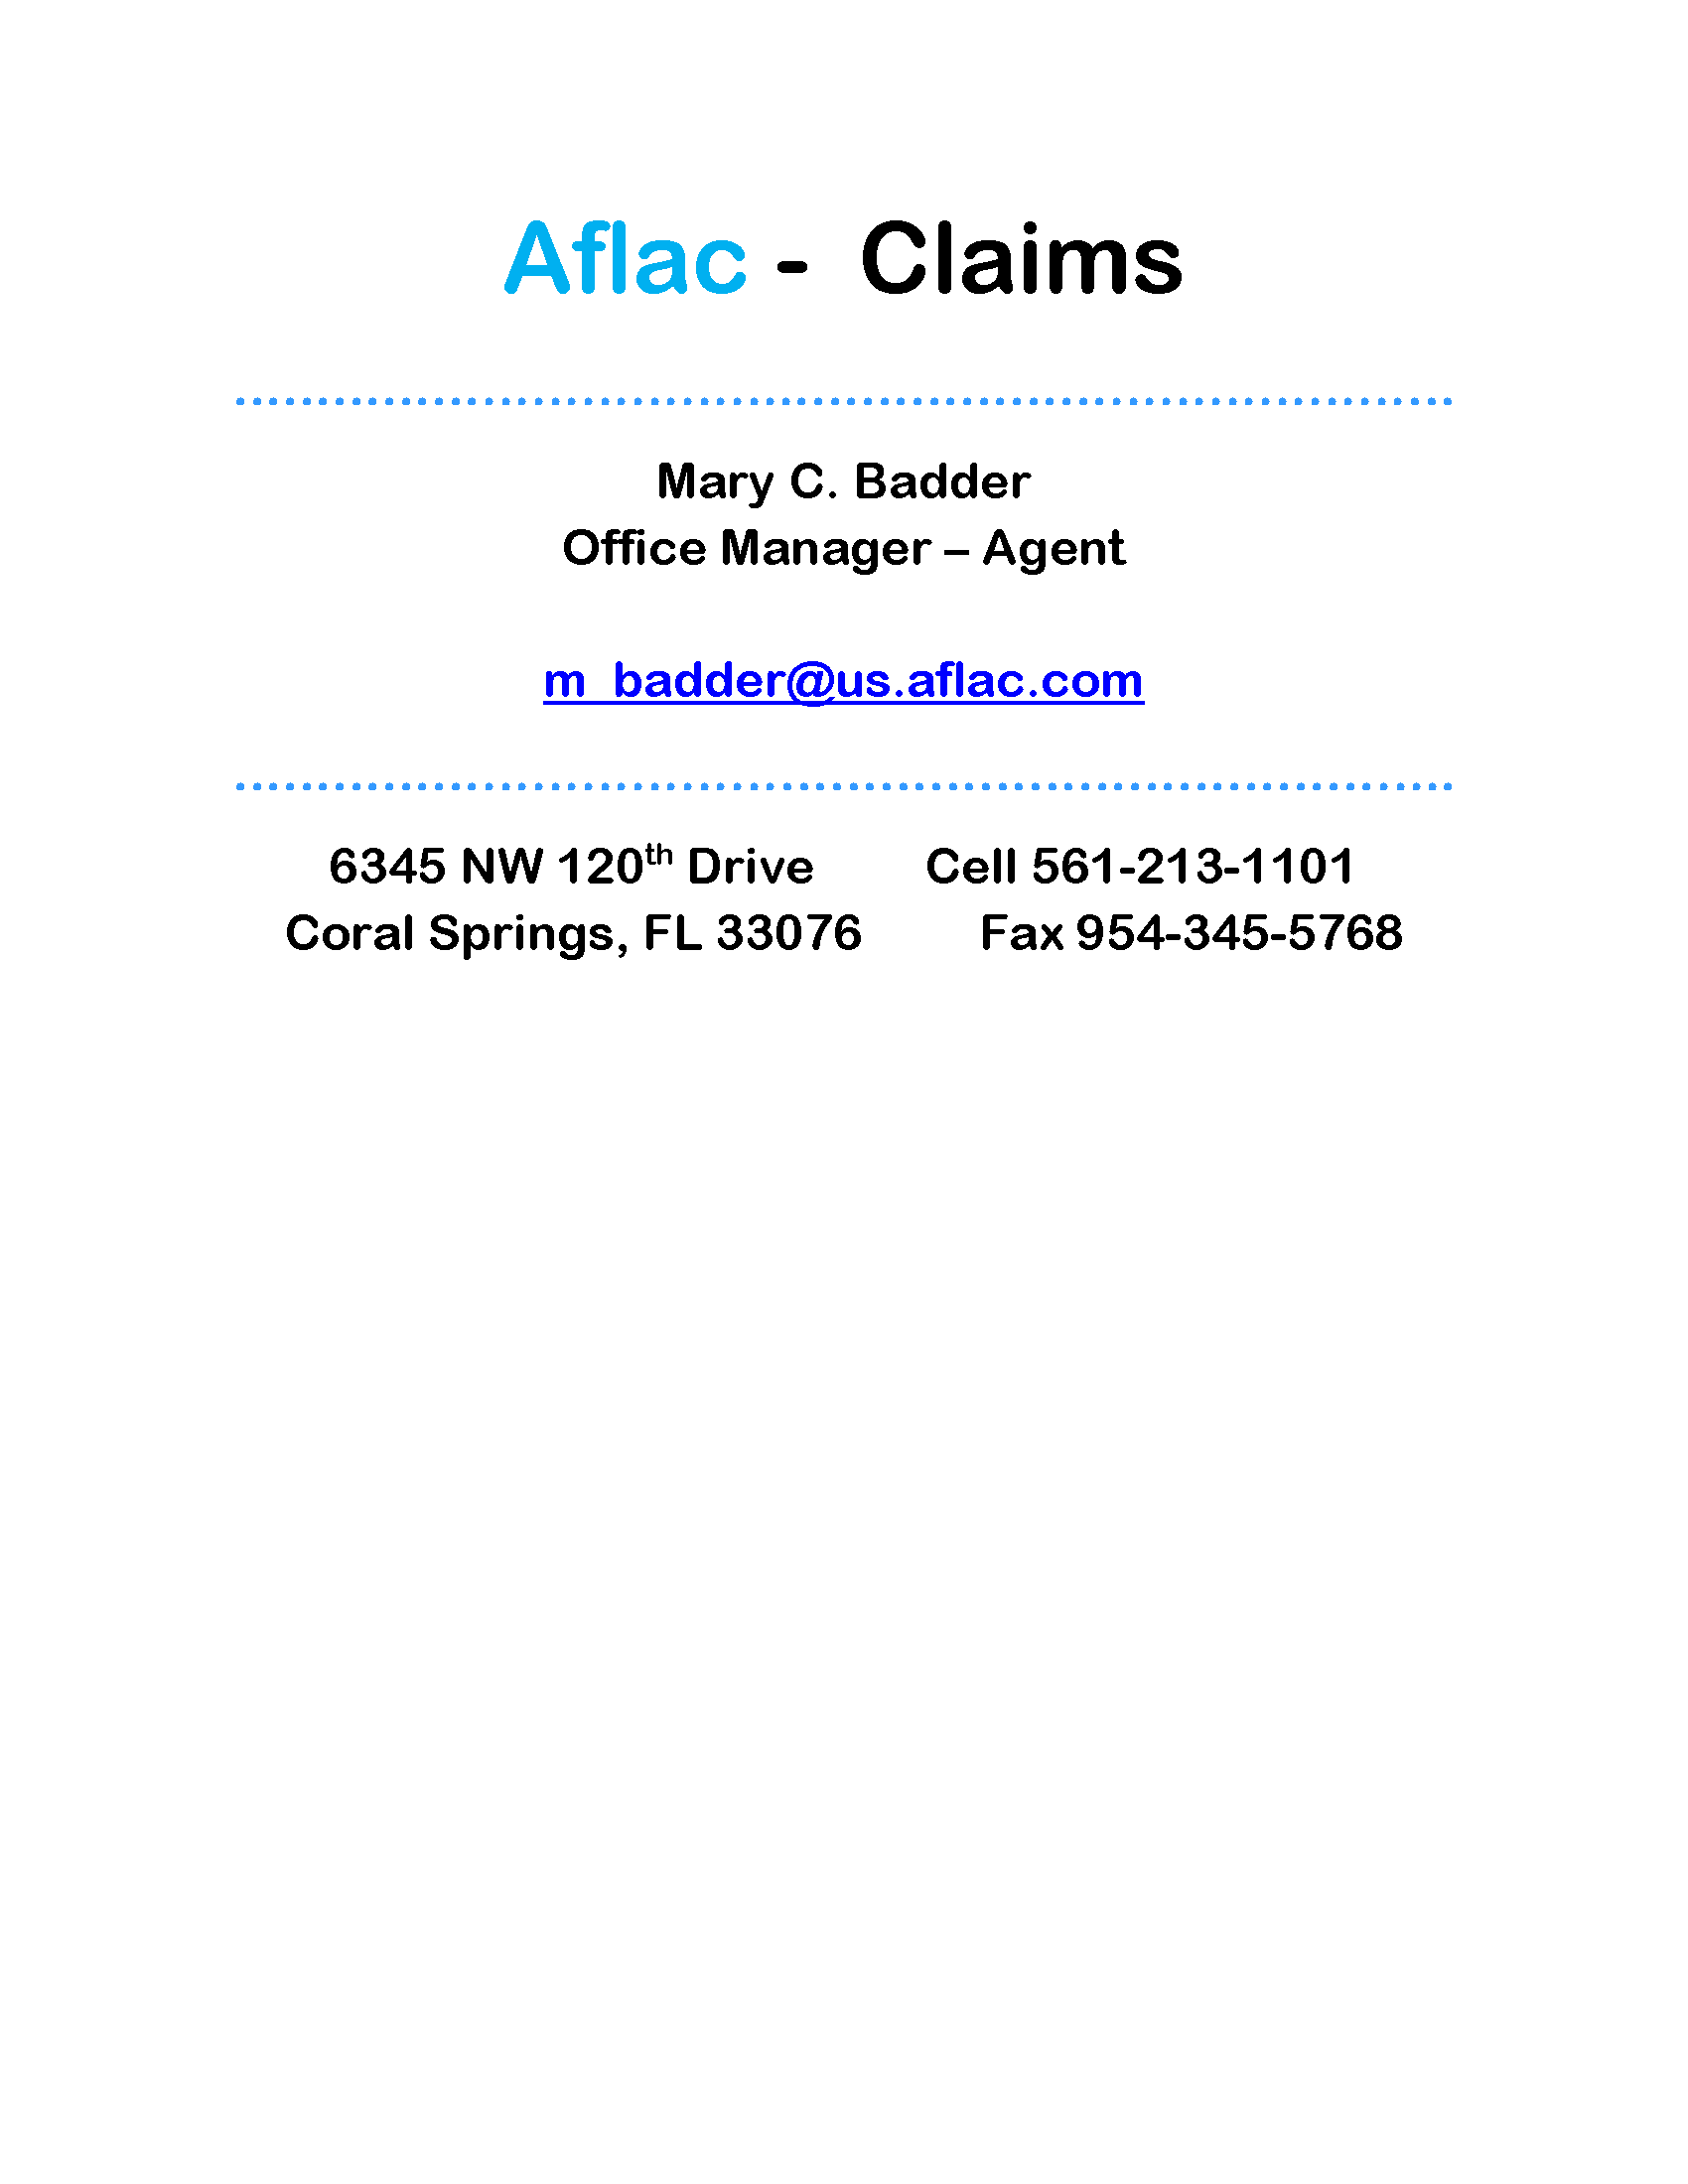 Employee Benefits Fund Forms – Aflac Claim Form